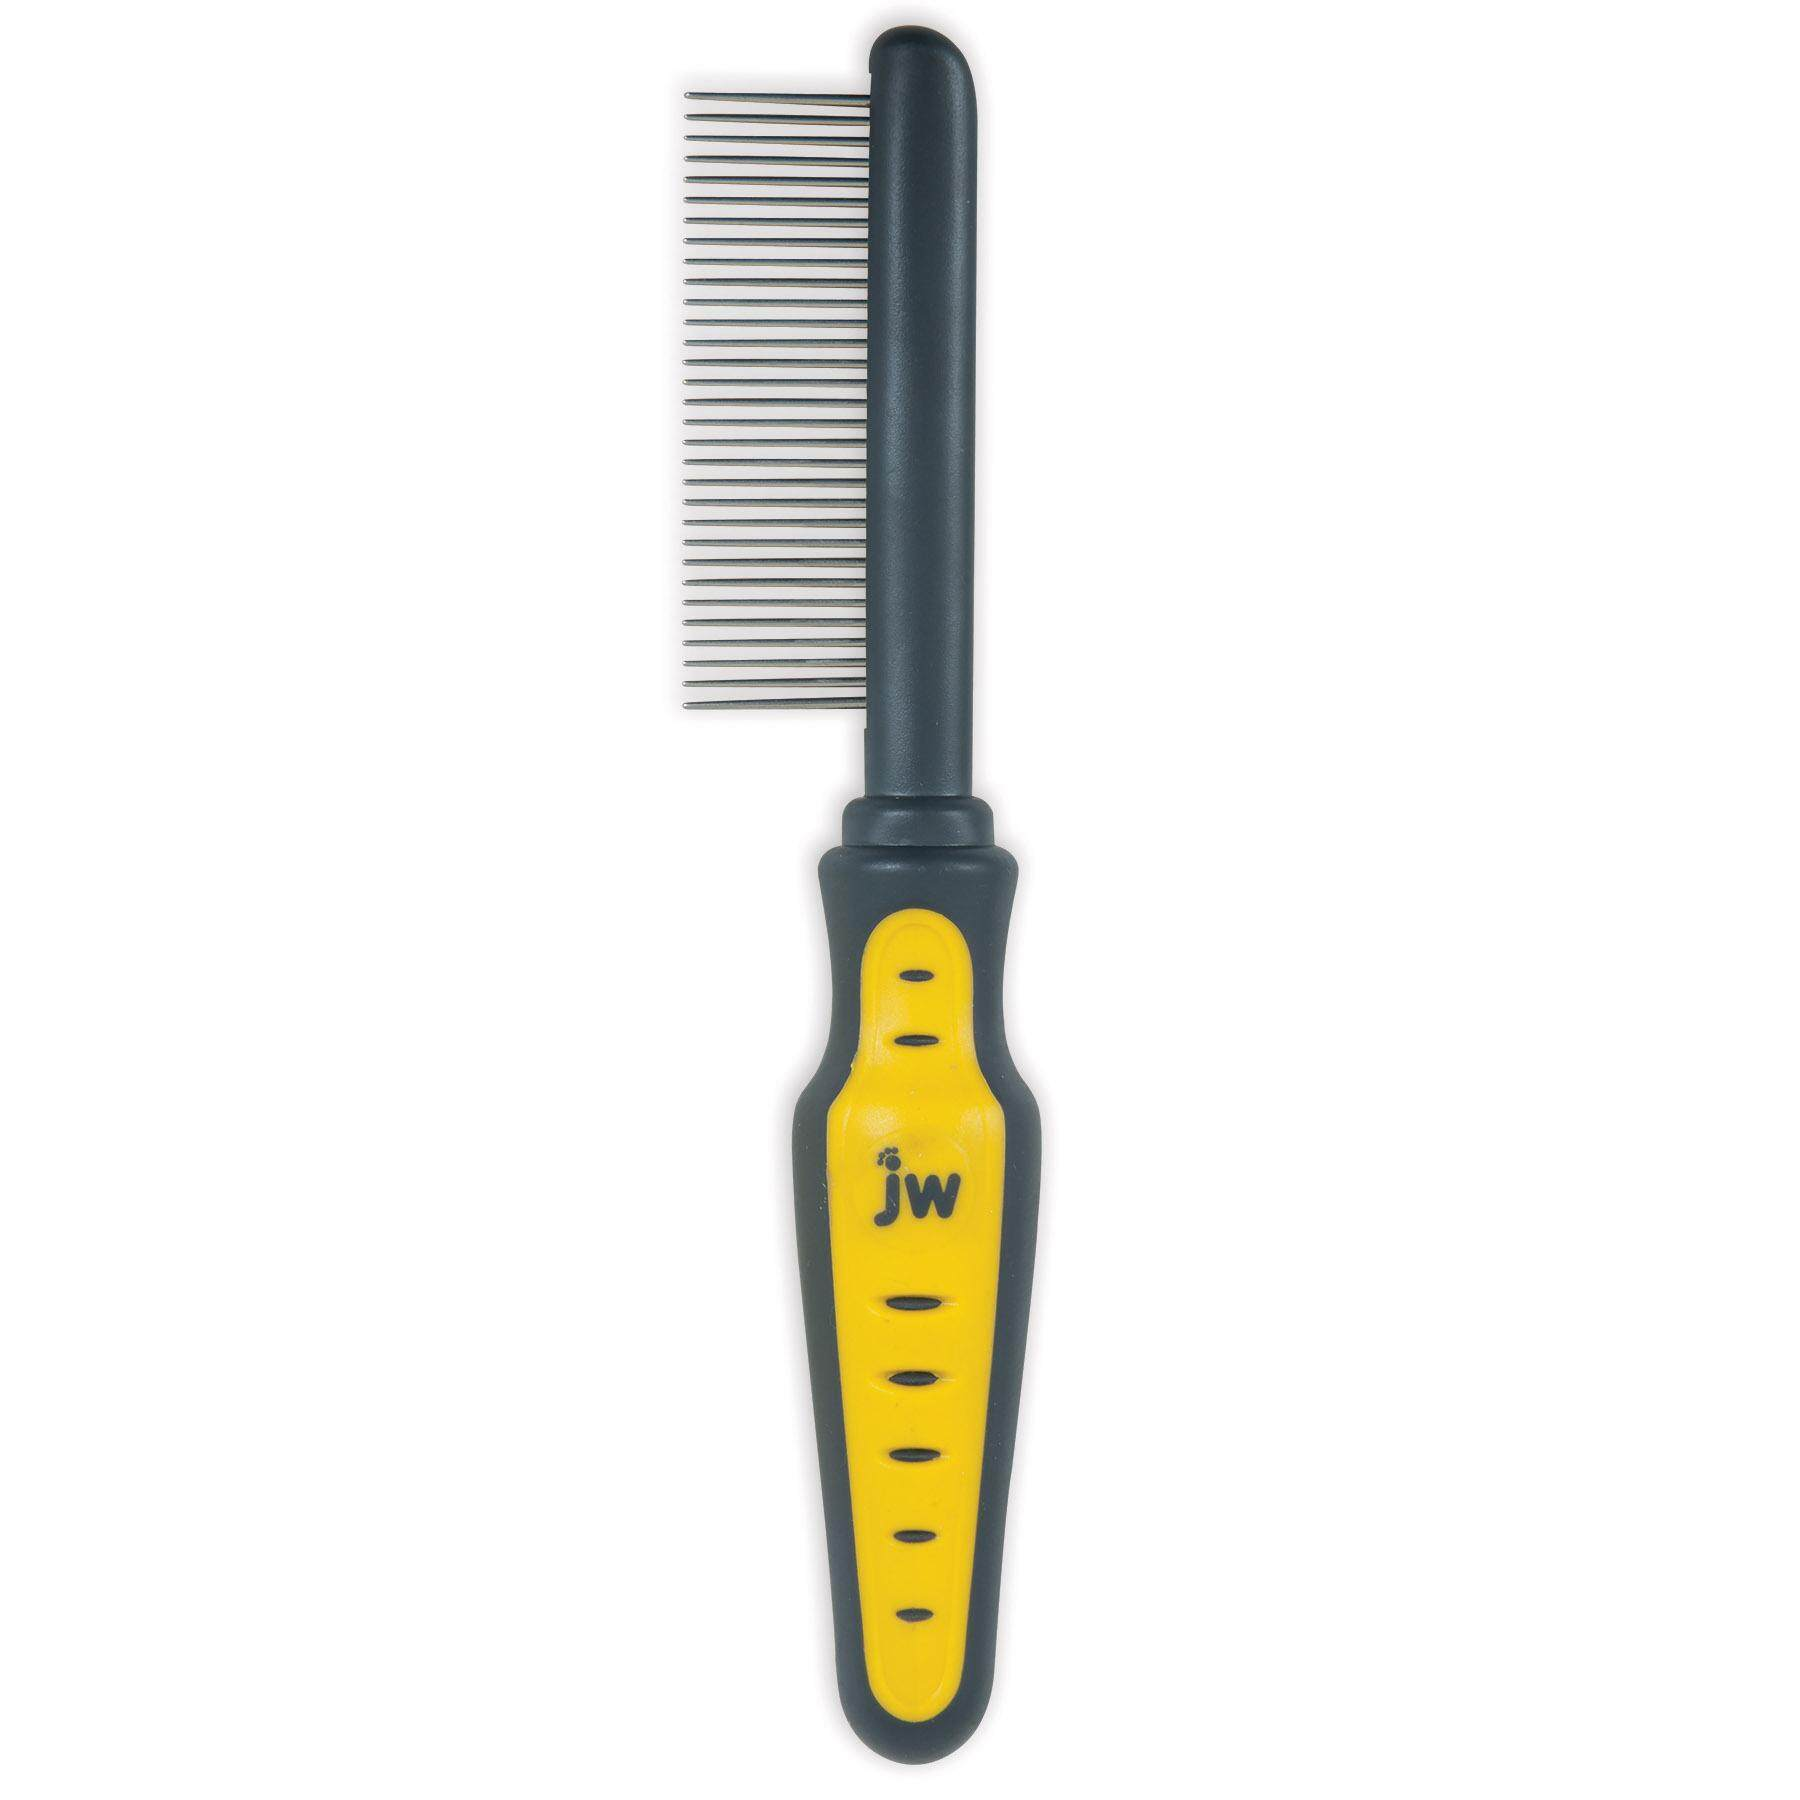 [JW PET GROOMING] Gripsoft Medium Comb